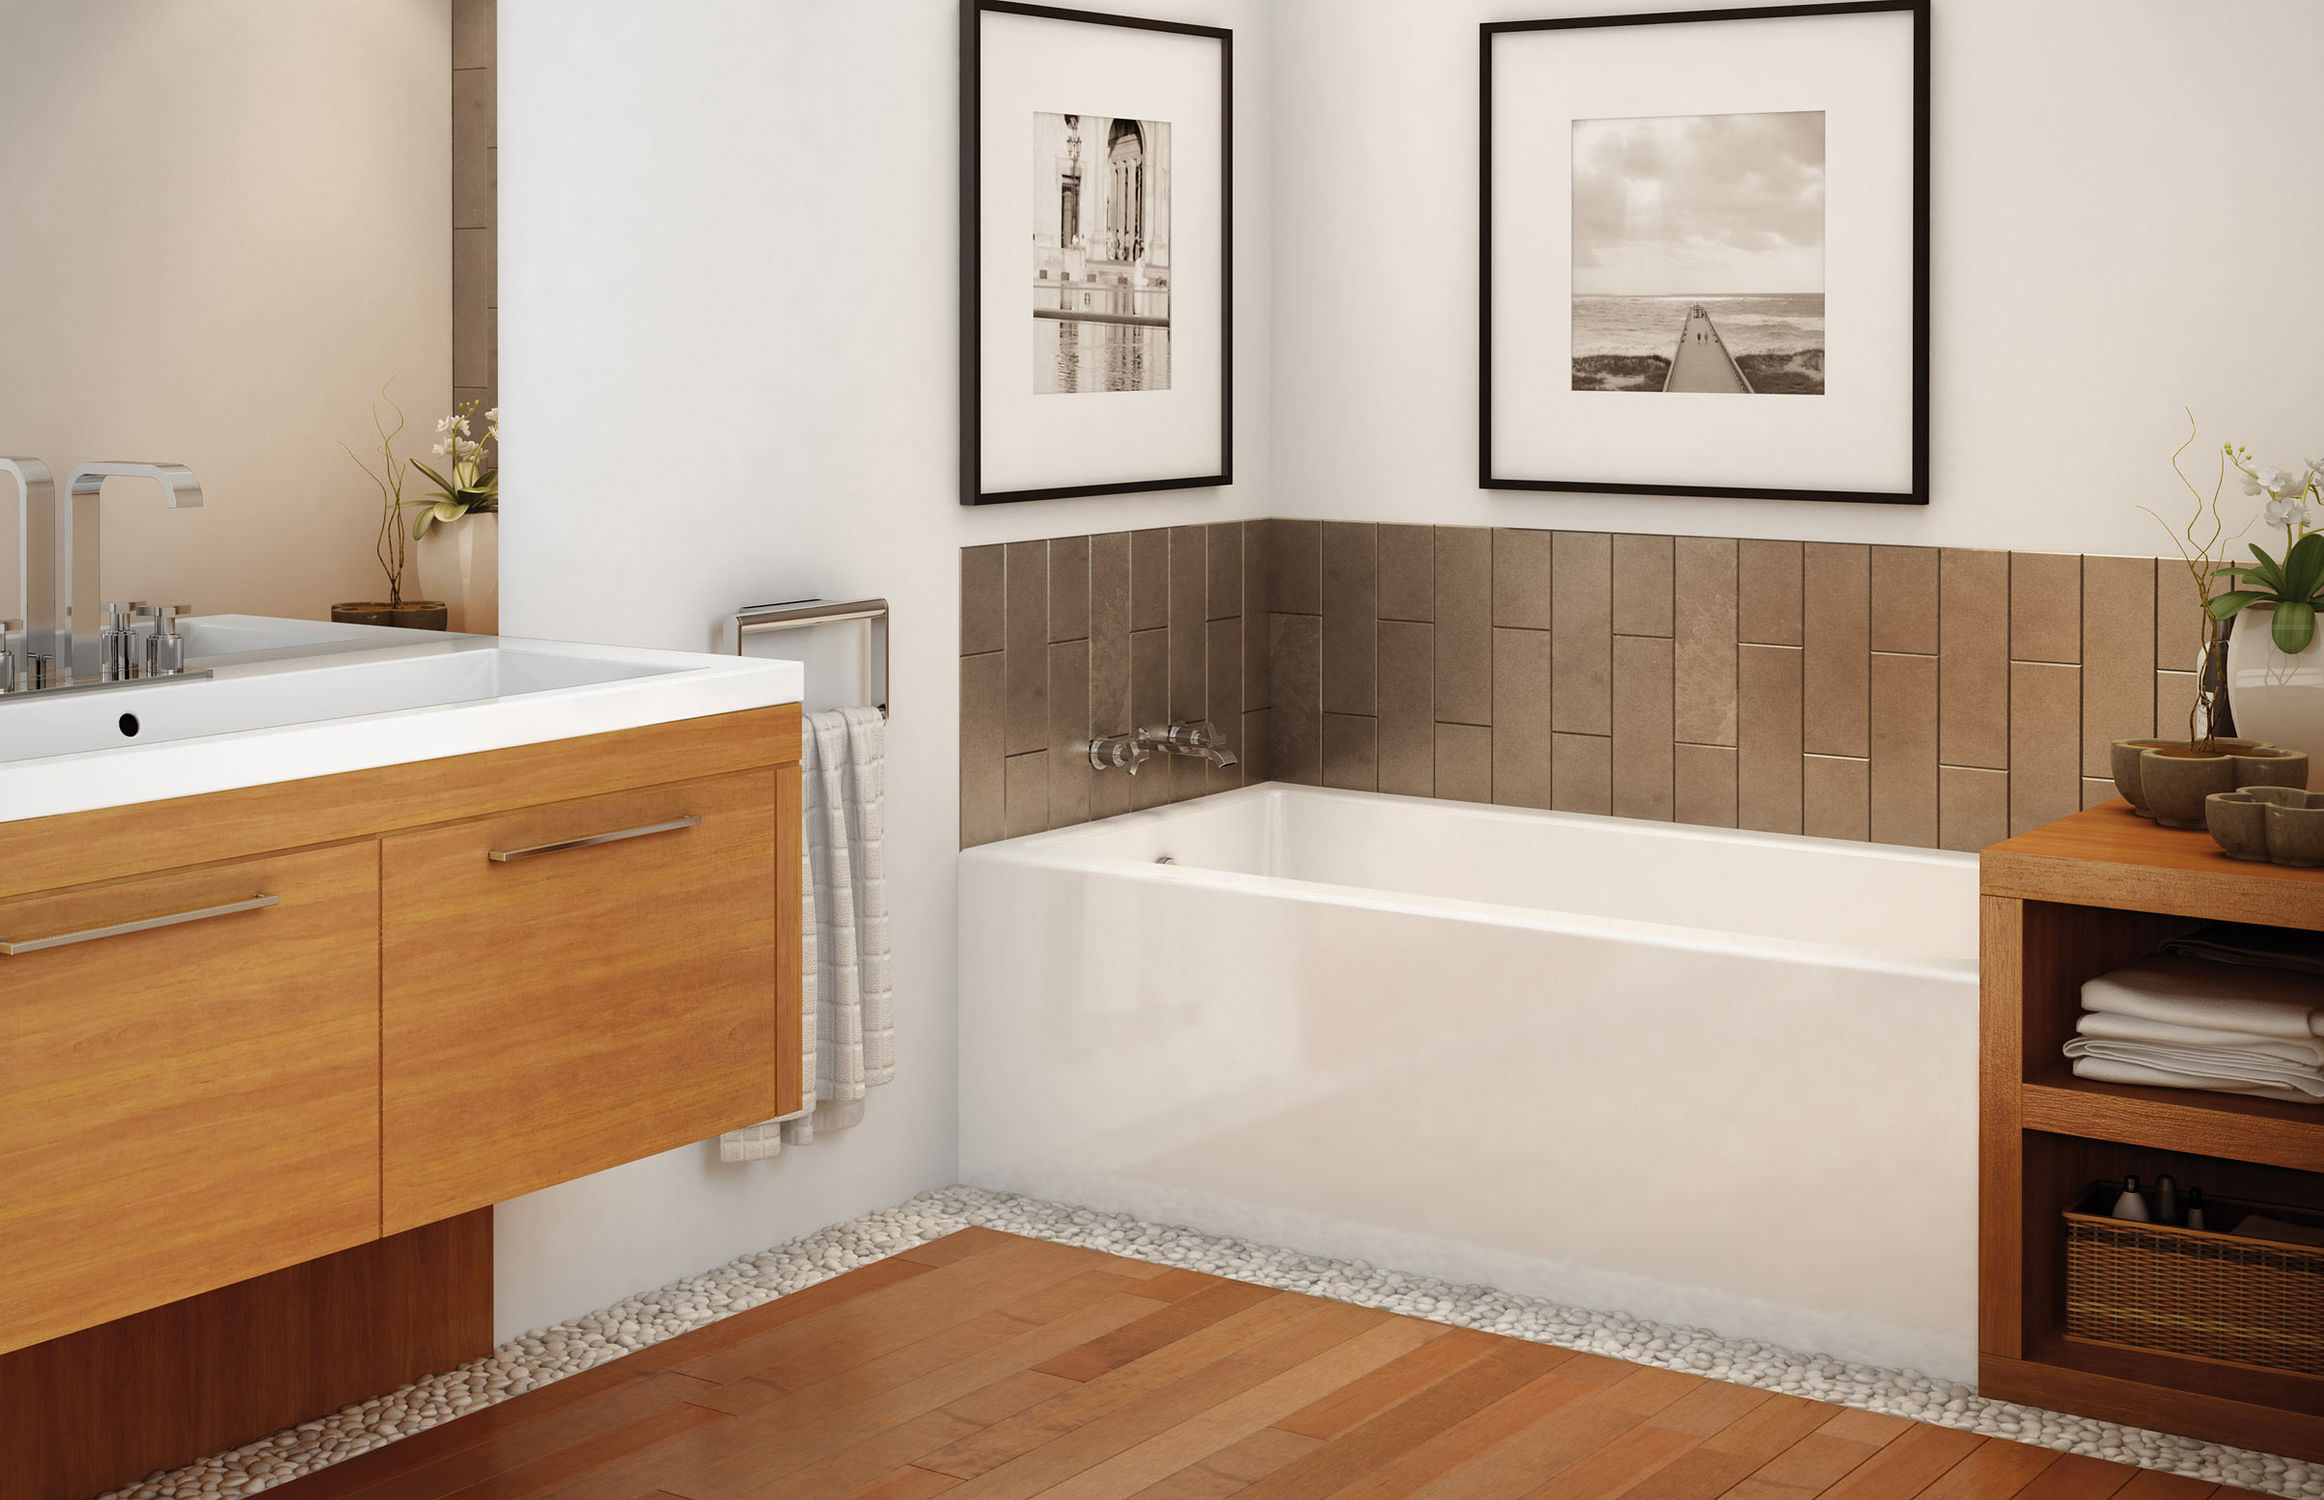 Free-standing bathtub - RUBIX 6030/6032 - MAAX bathroom